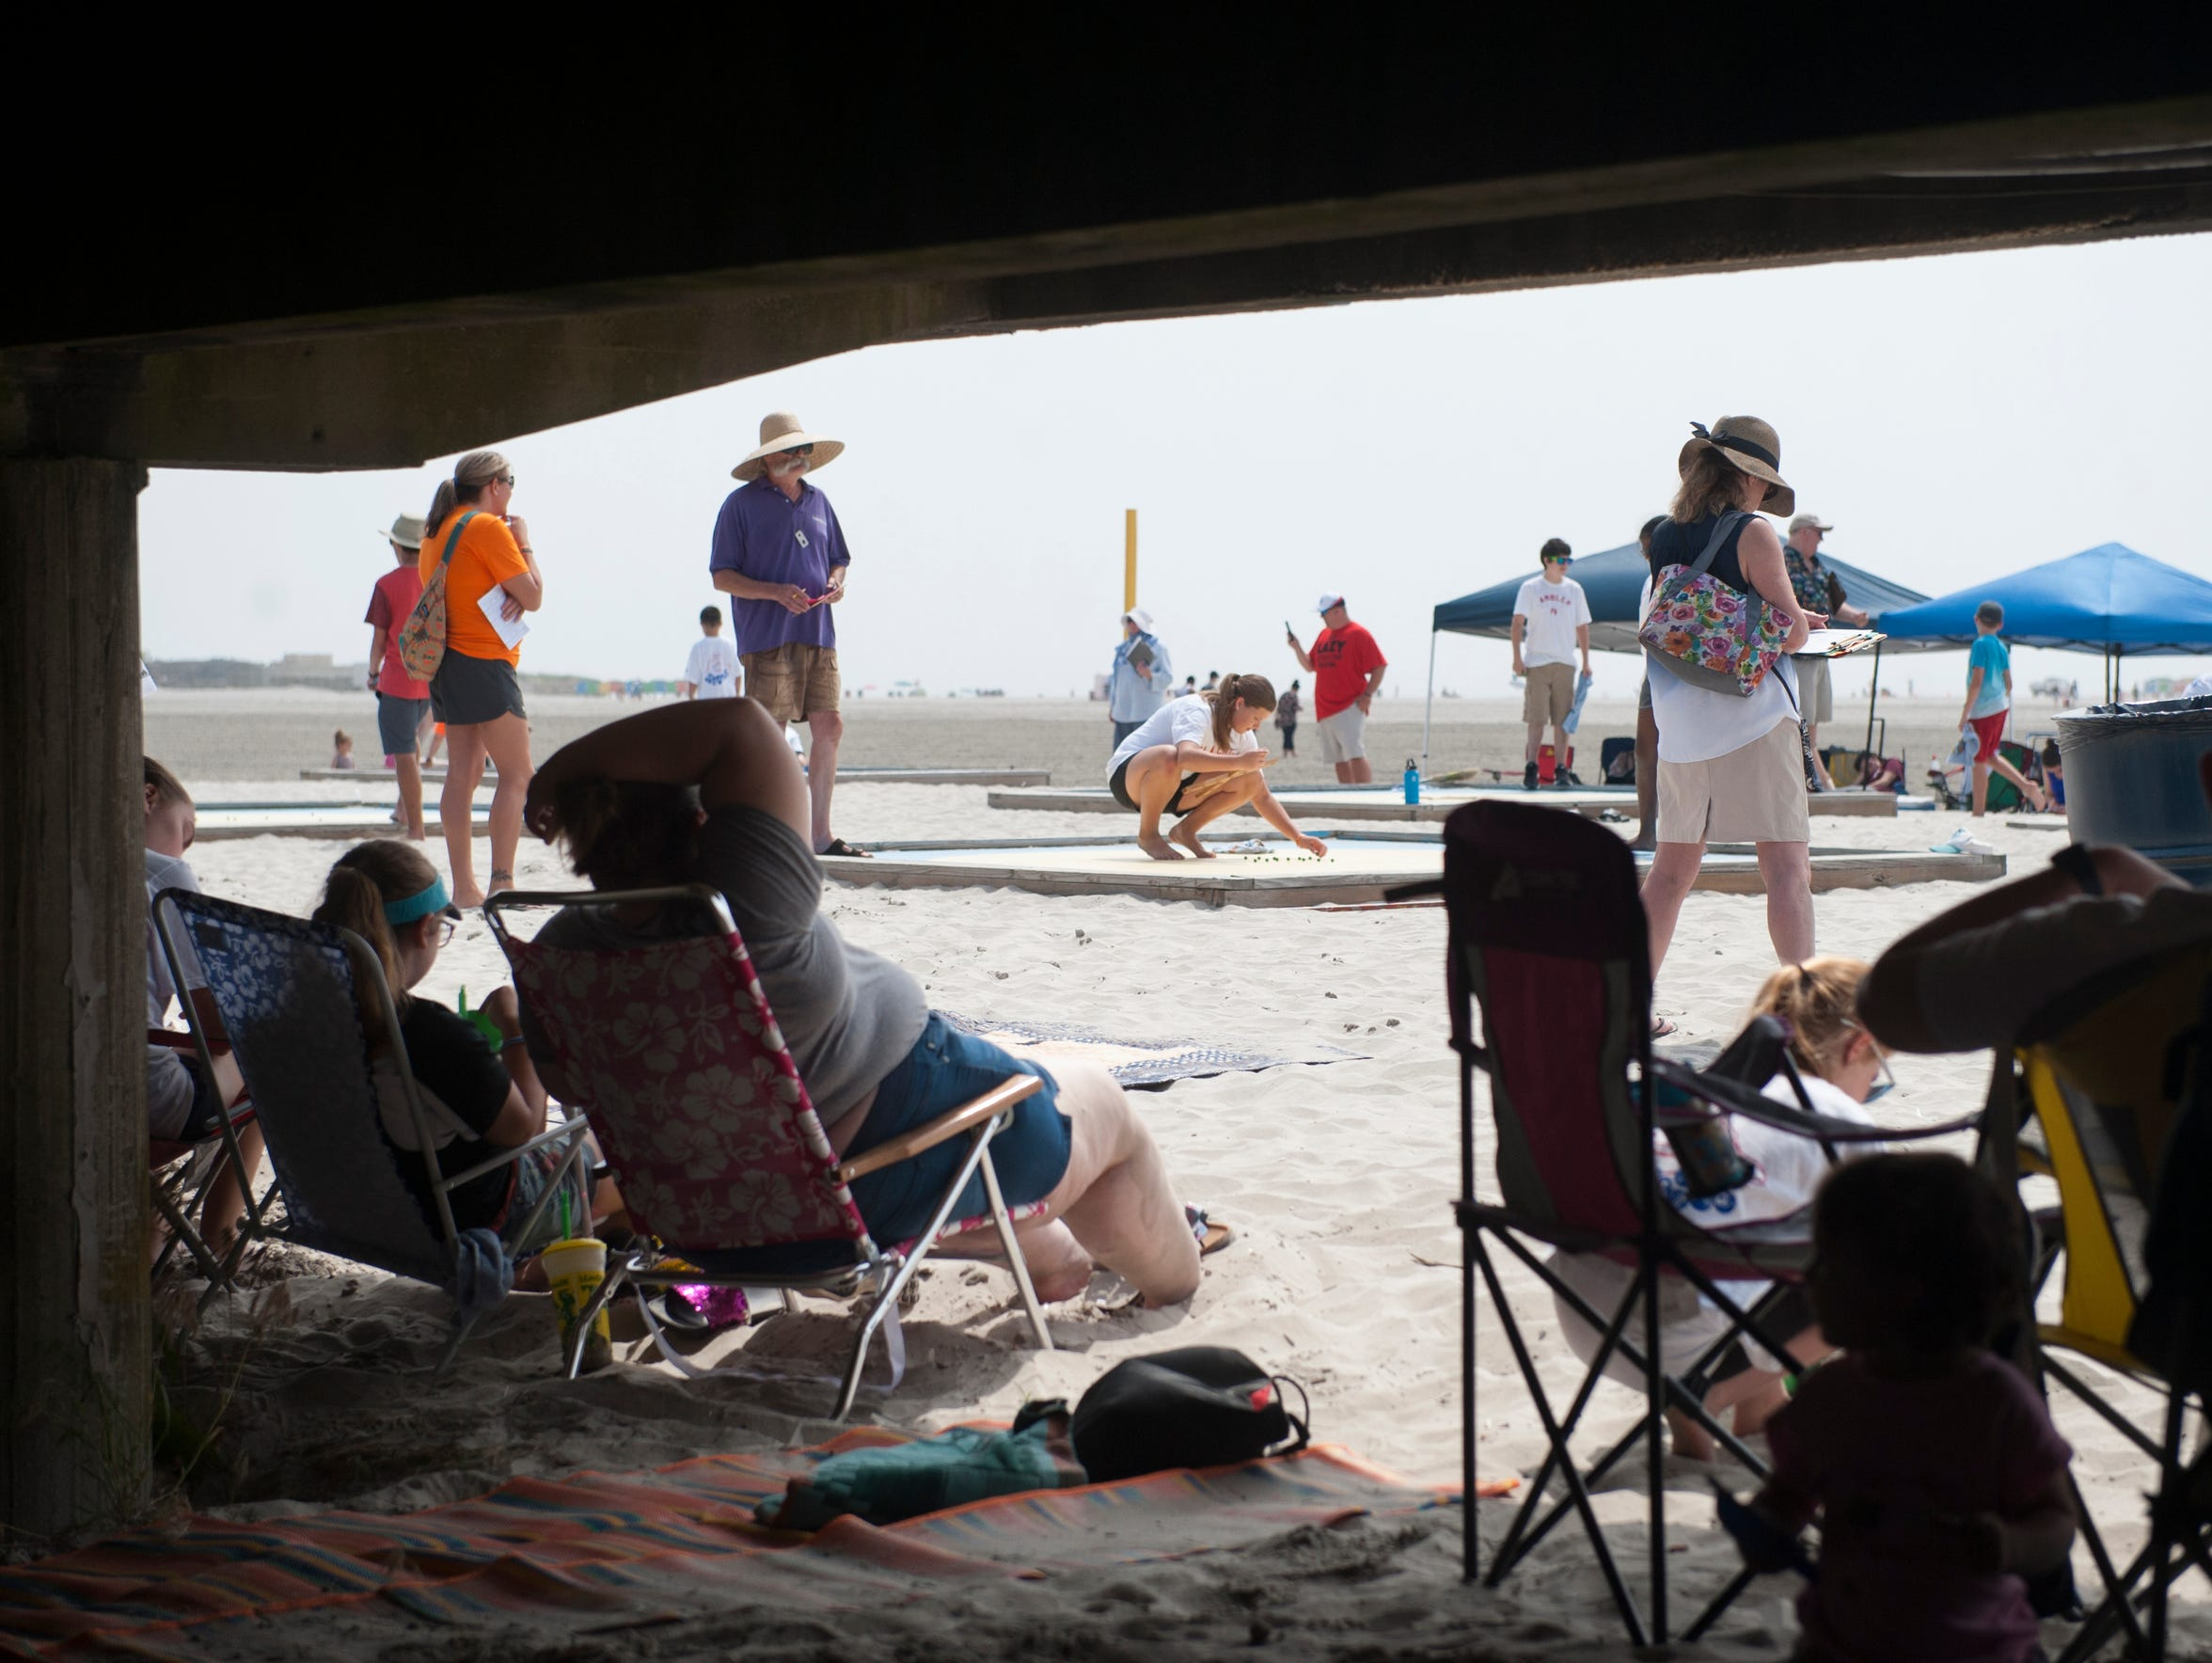 Spectators sit under the boardwalk to take refuge from